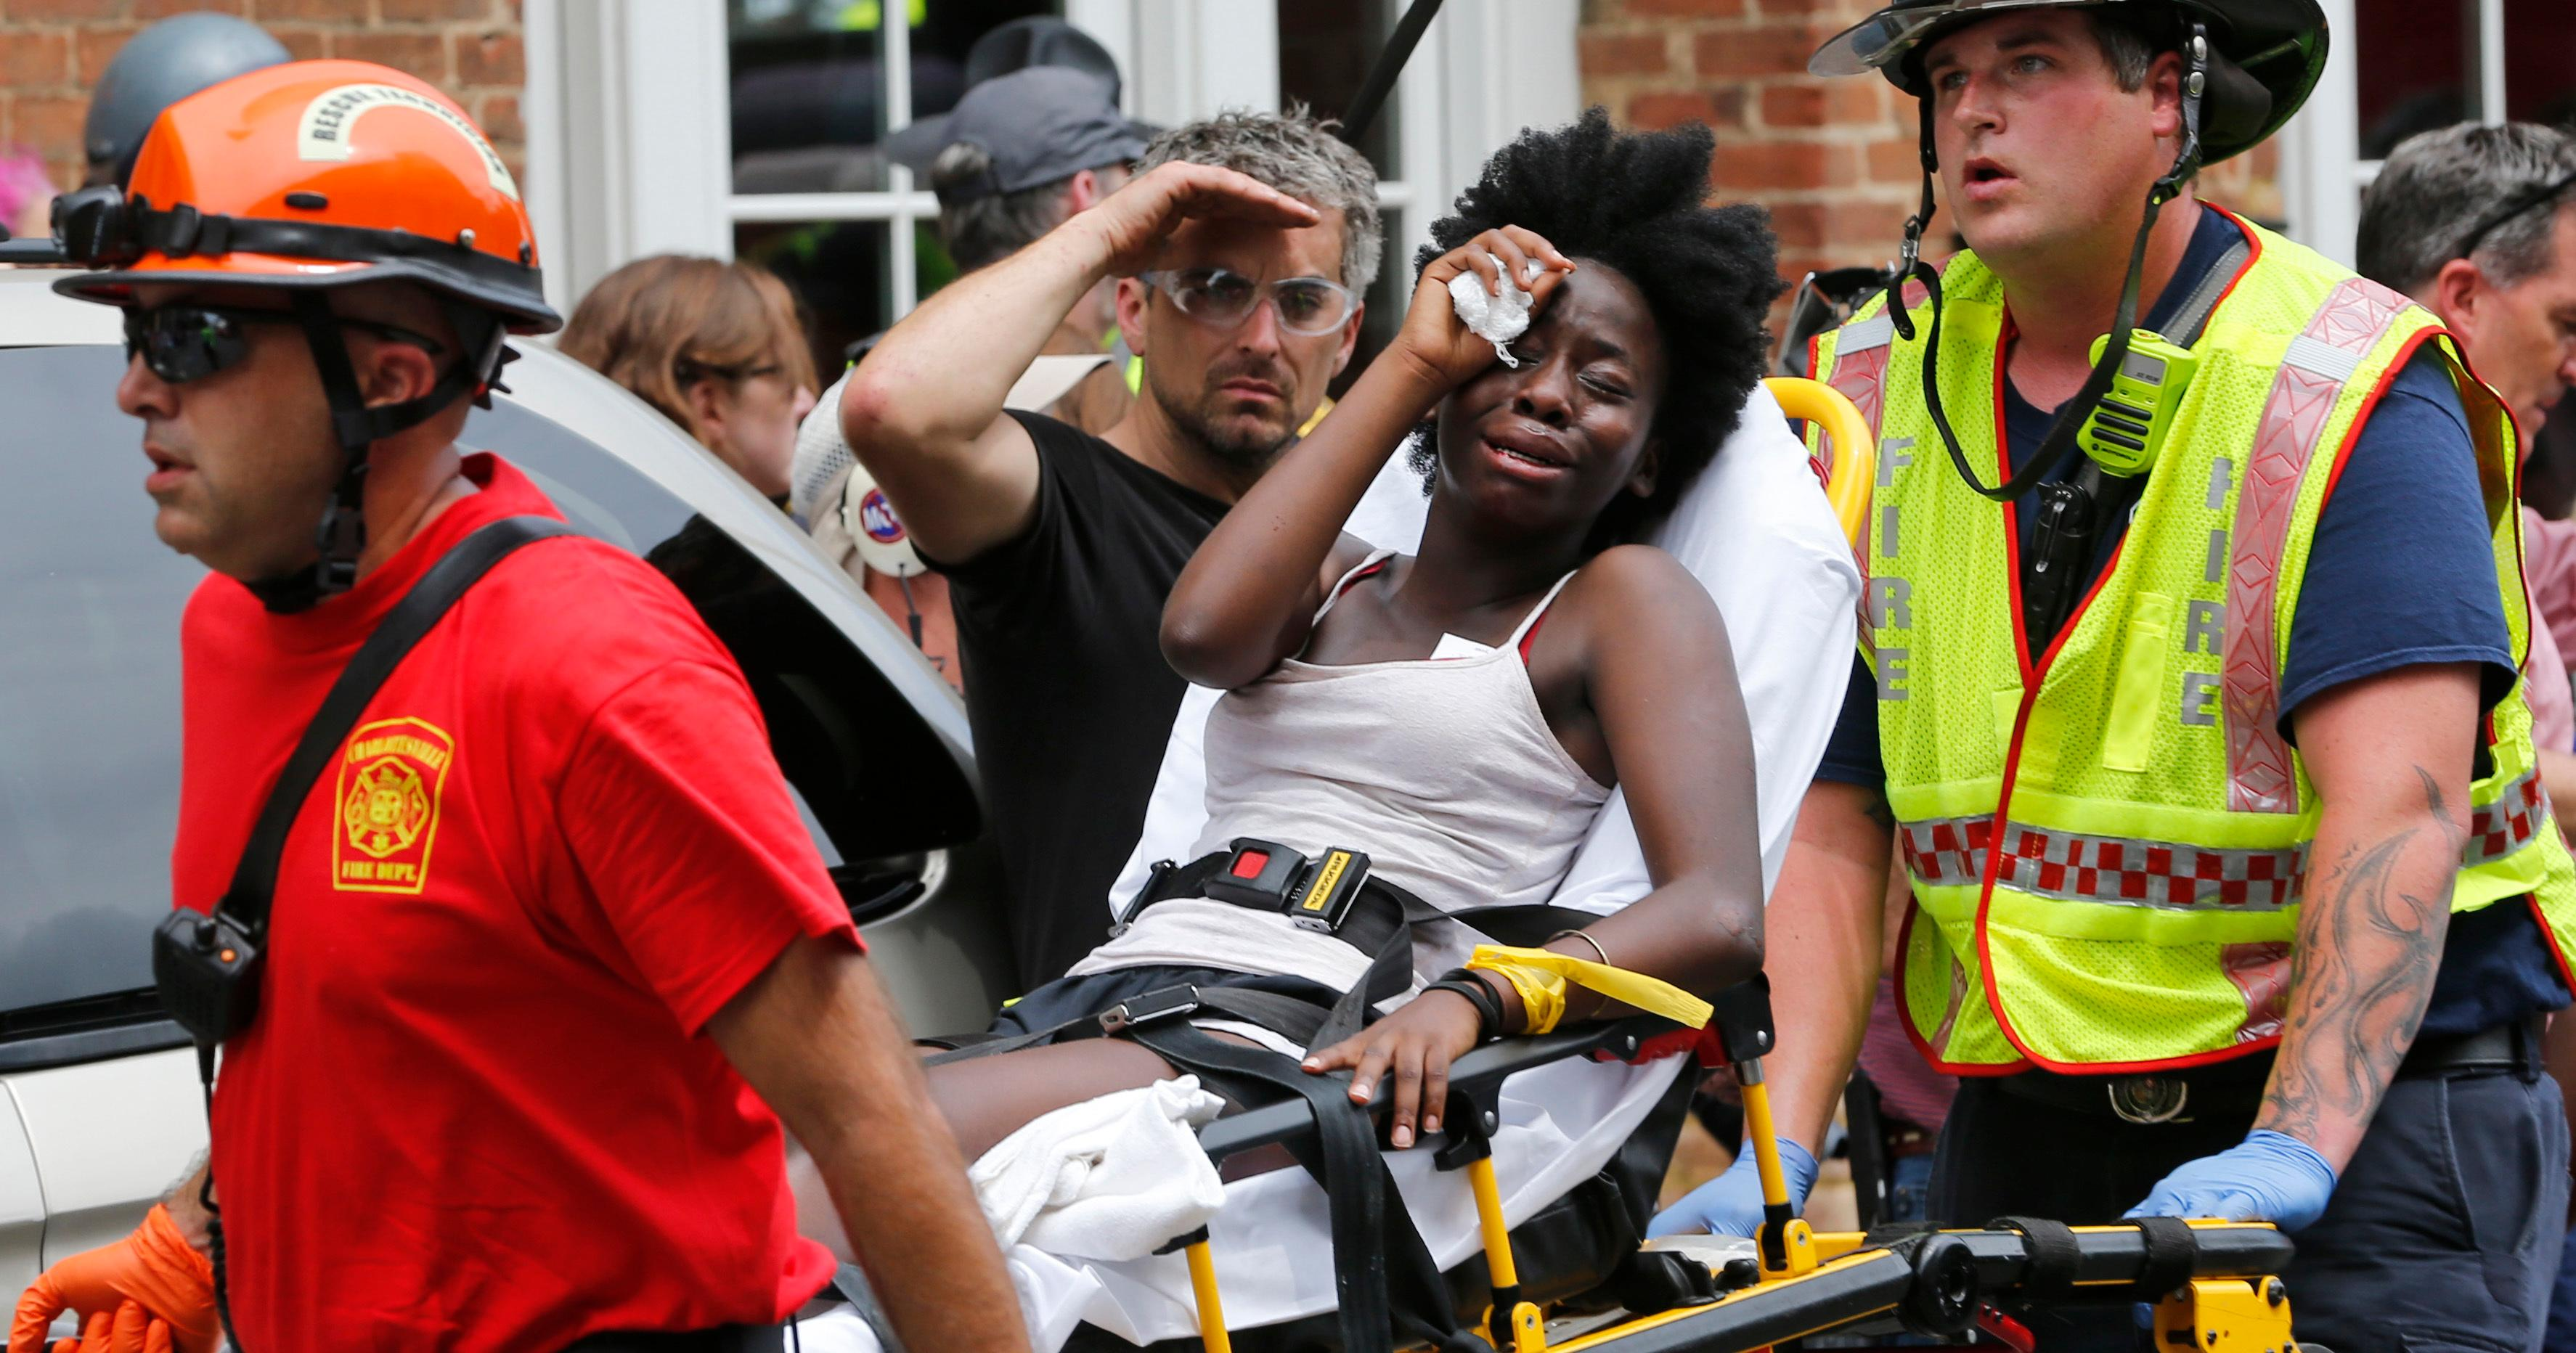 Rescue personnel help an injured woman after a car ran into a large group of protesters after an white nationalist rally in Charlottesville, Va., Saturday, Aug. 12, 2017.  The nationalists were holding the rally to protest plans by the city of Charlottesville to remove a statue of Confederate Gen. Robert E. Lee. There were several hundred protesters marching in a long line when the car drove into a group of them.(AP Photo/Steve Helber)